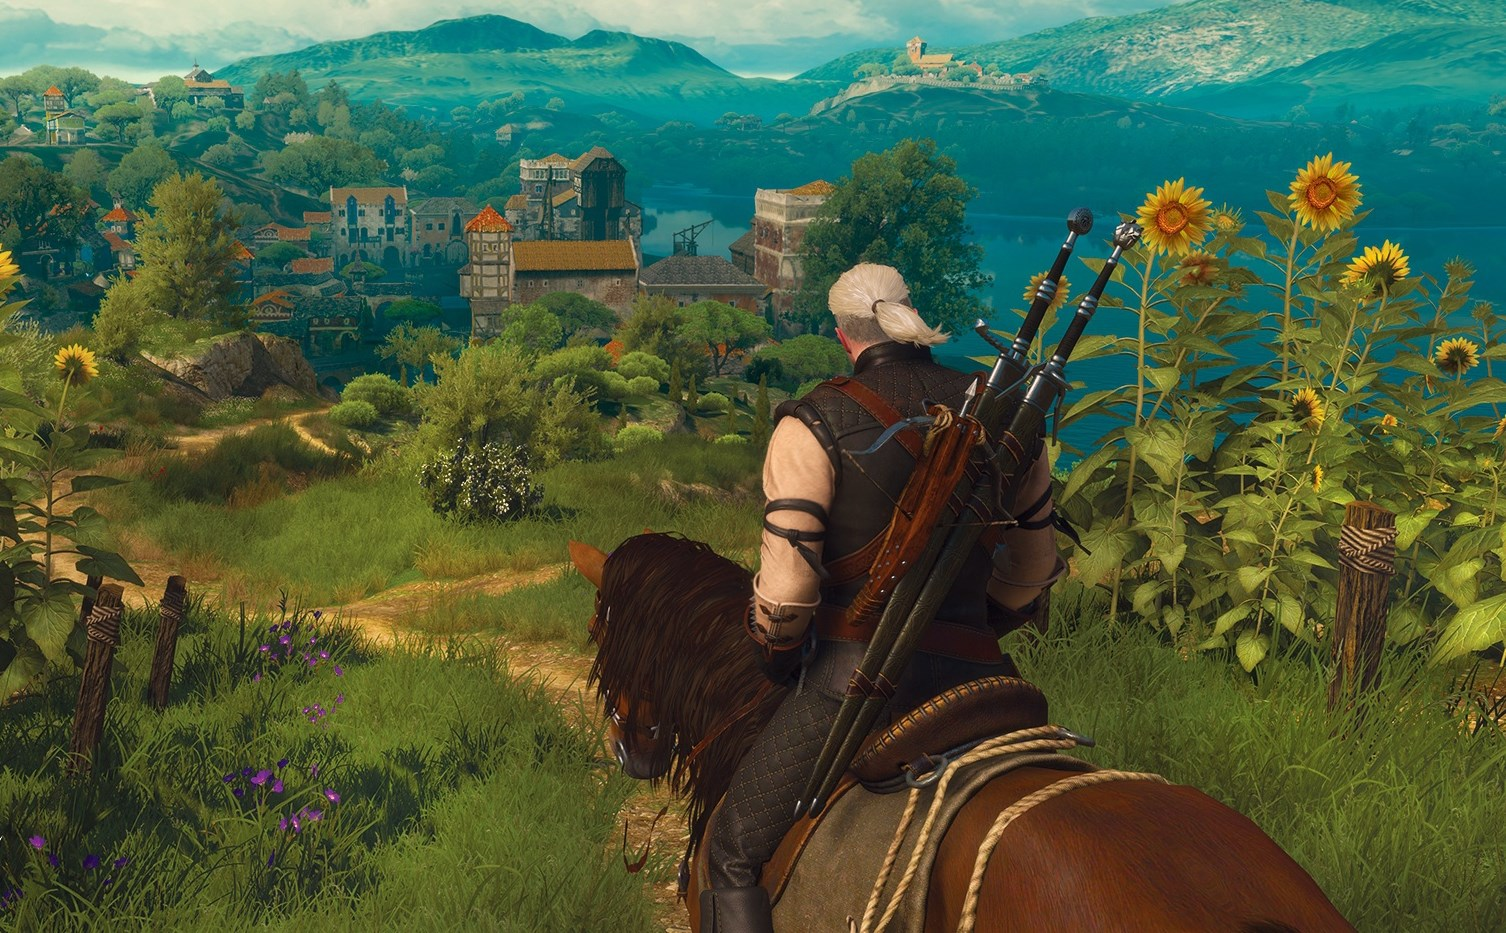 The Witcher 3: Blood and Wine dev diary teases Geralt's greatest challenge yet   PC Gamer